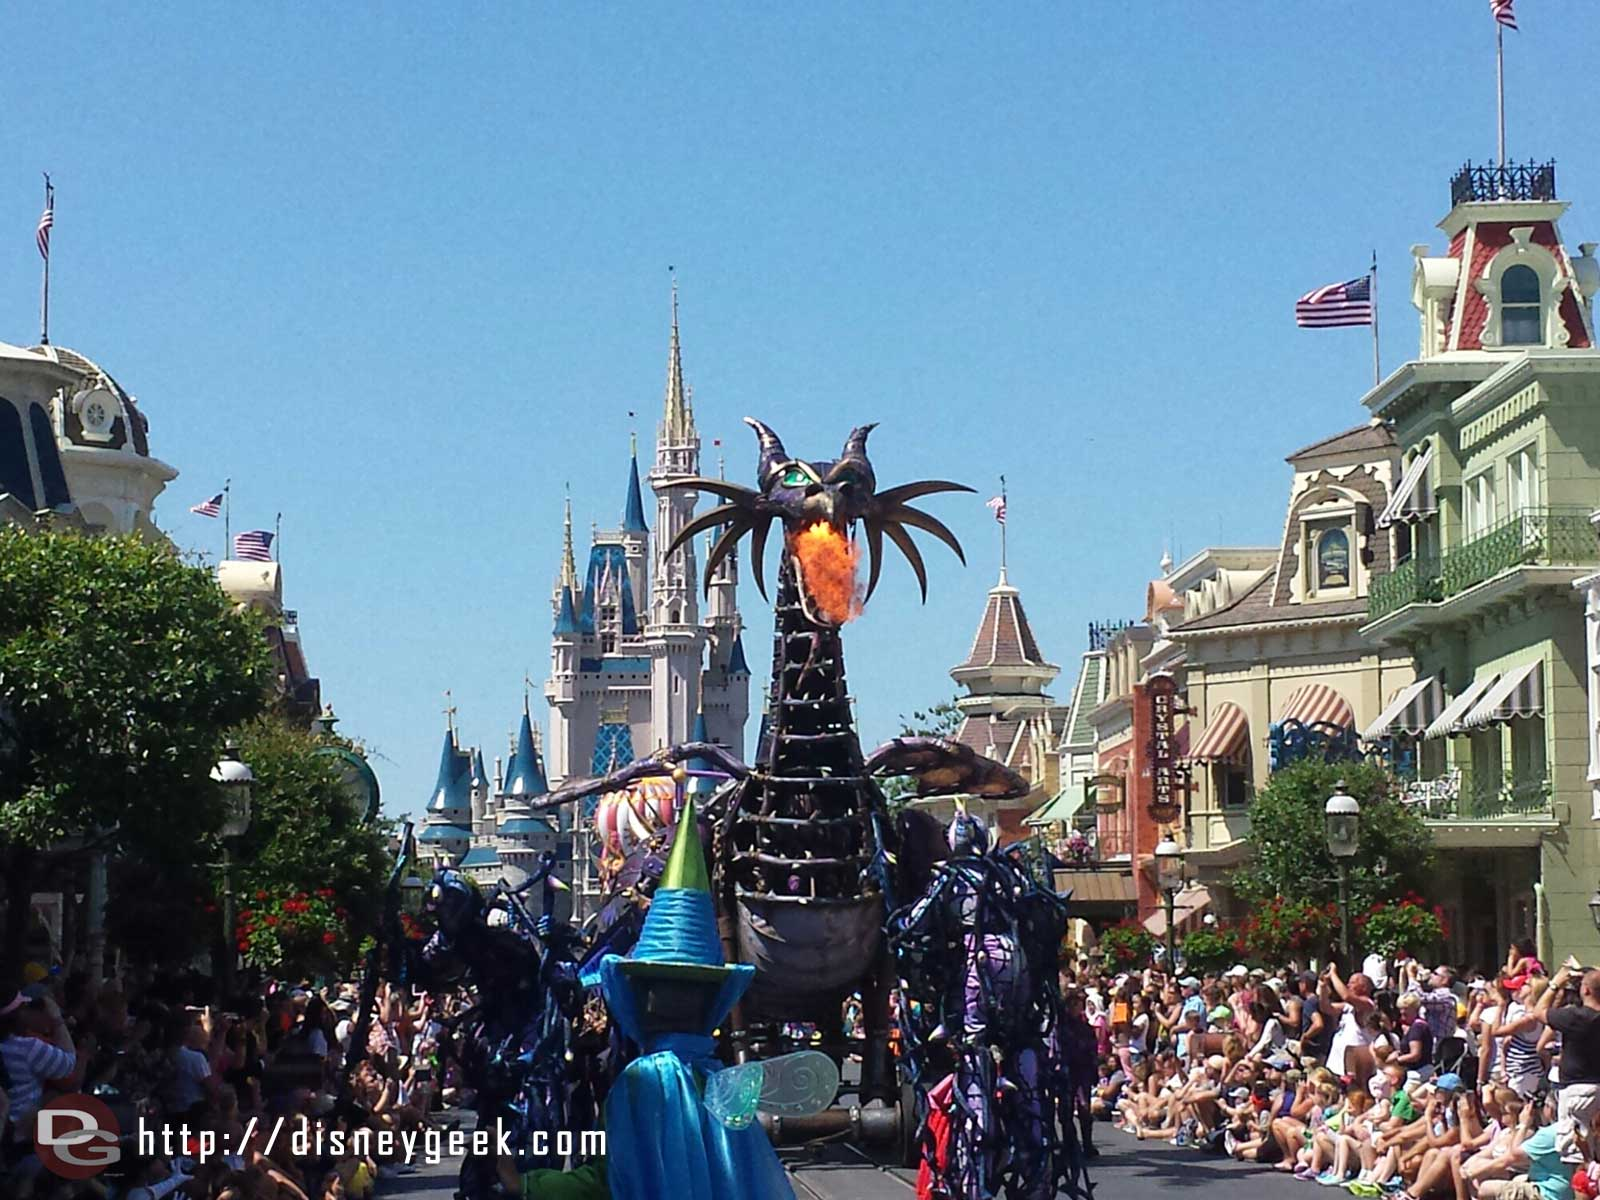 Maleficent Returns to Disney's Festival of Fantasy Parade at Walt Disney World